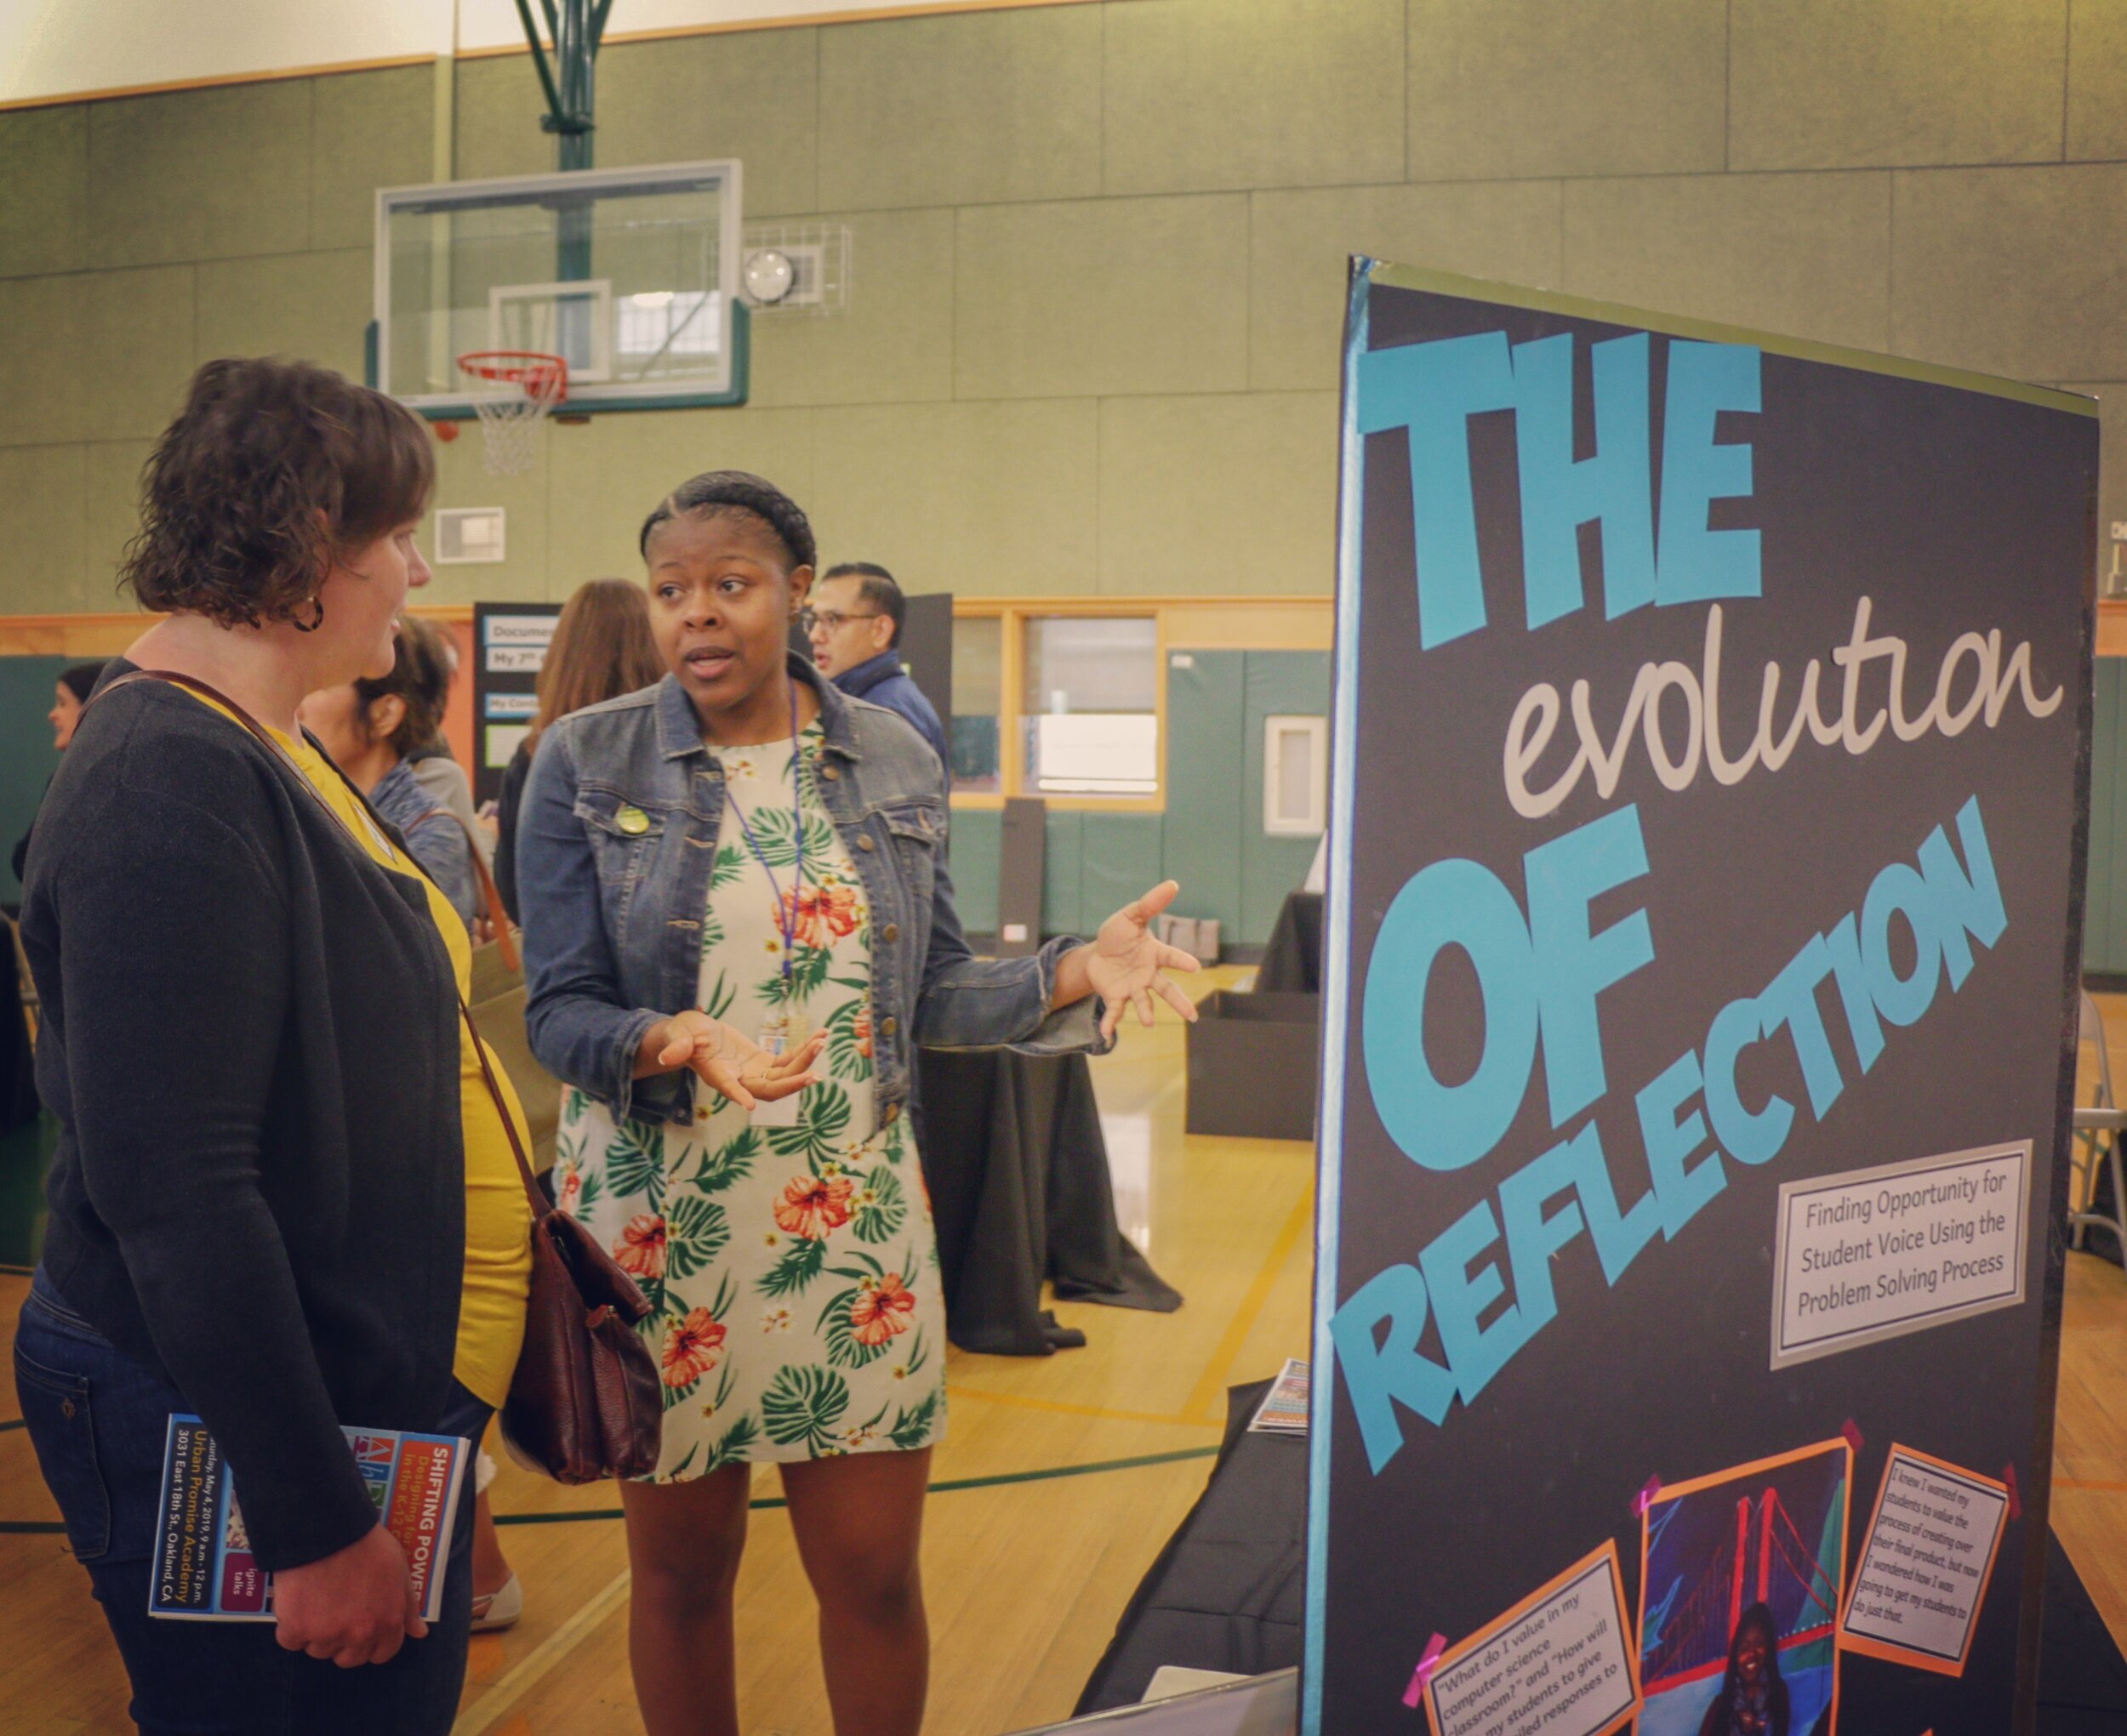 THE EVOLUTION OF REFLECTION: FINDING OPPORTUNITY FOR STUDENT VOICE USING THE PROBLEM SOLVING PROCESS   By  Chantel Parnell , 2018-2019 Teaching Fellow, Computer Science Teacher, Bret Harte Middle School